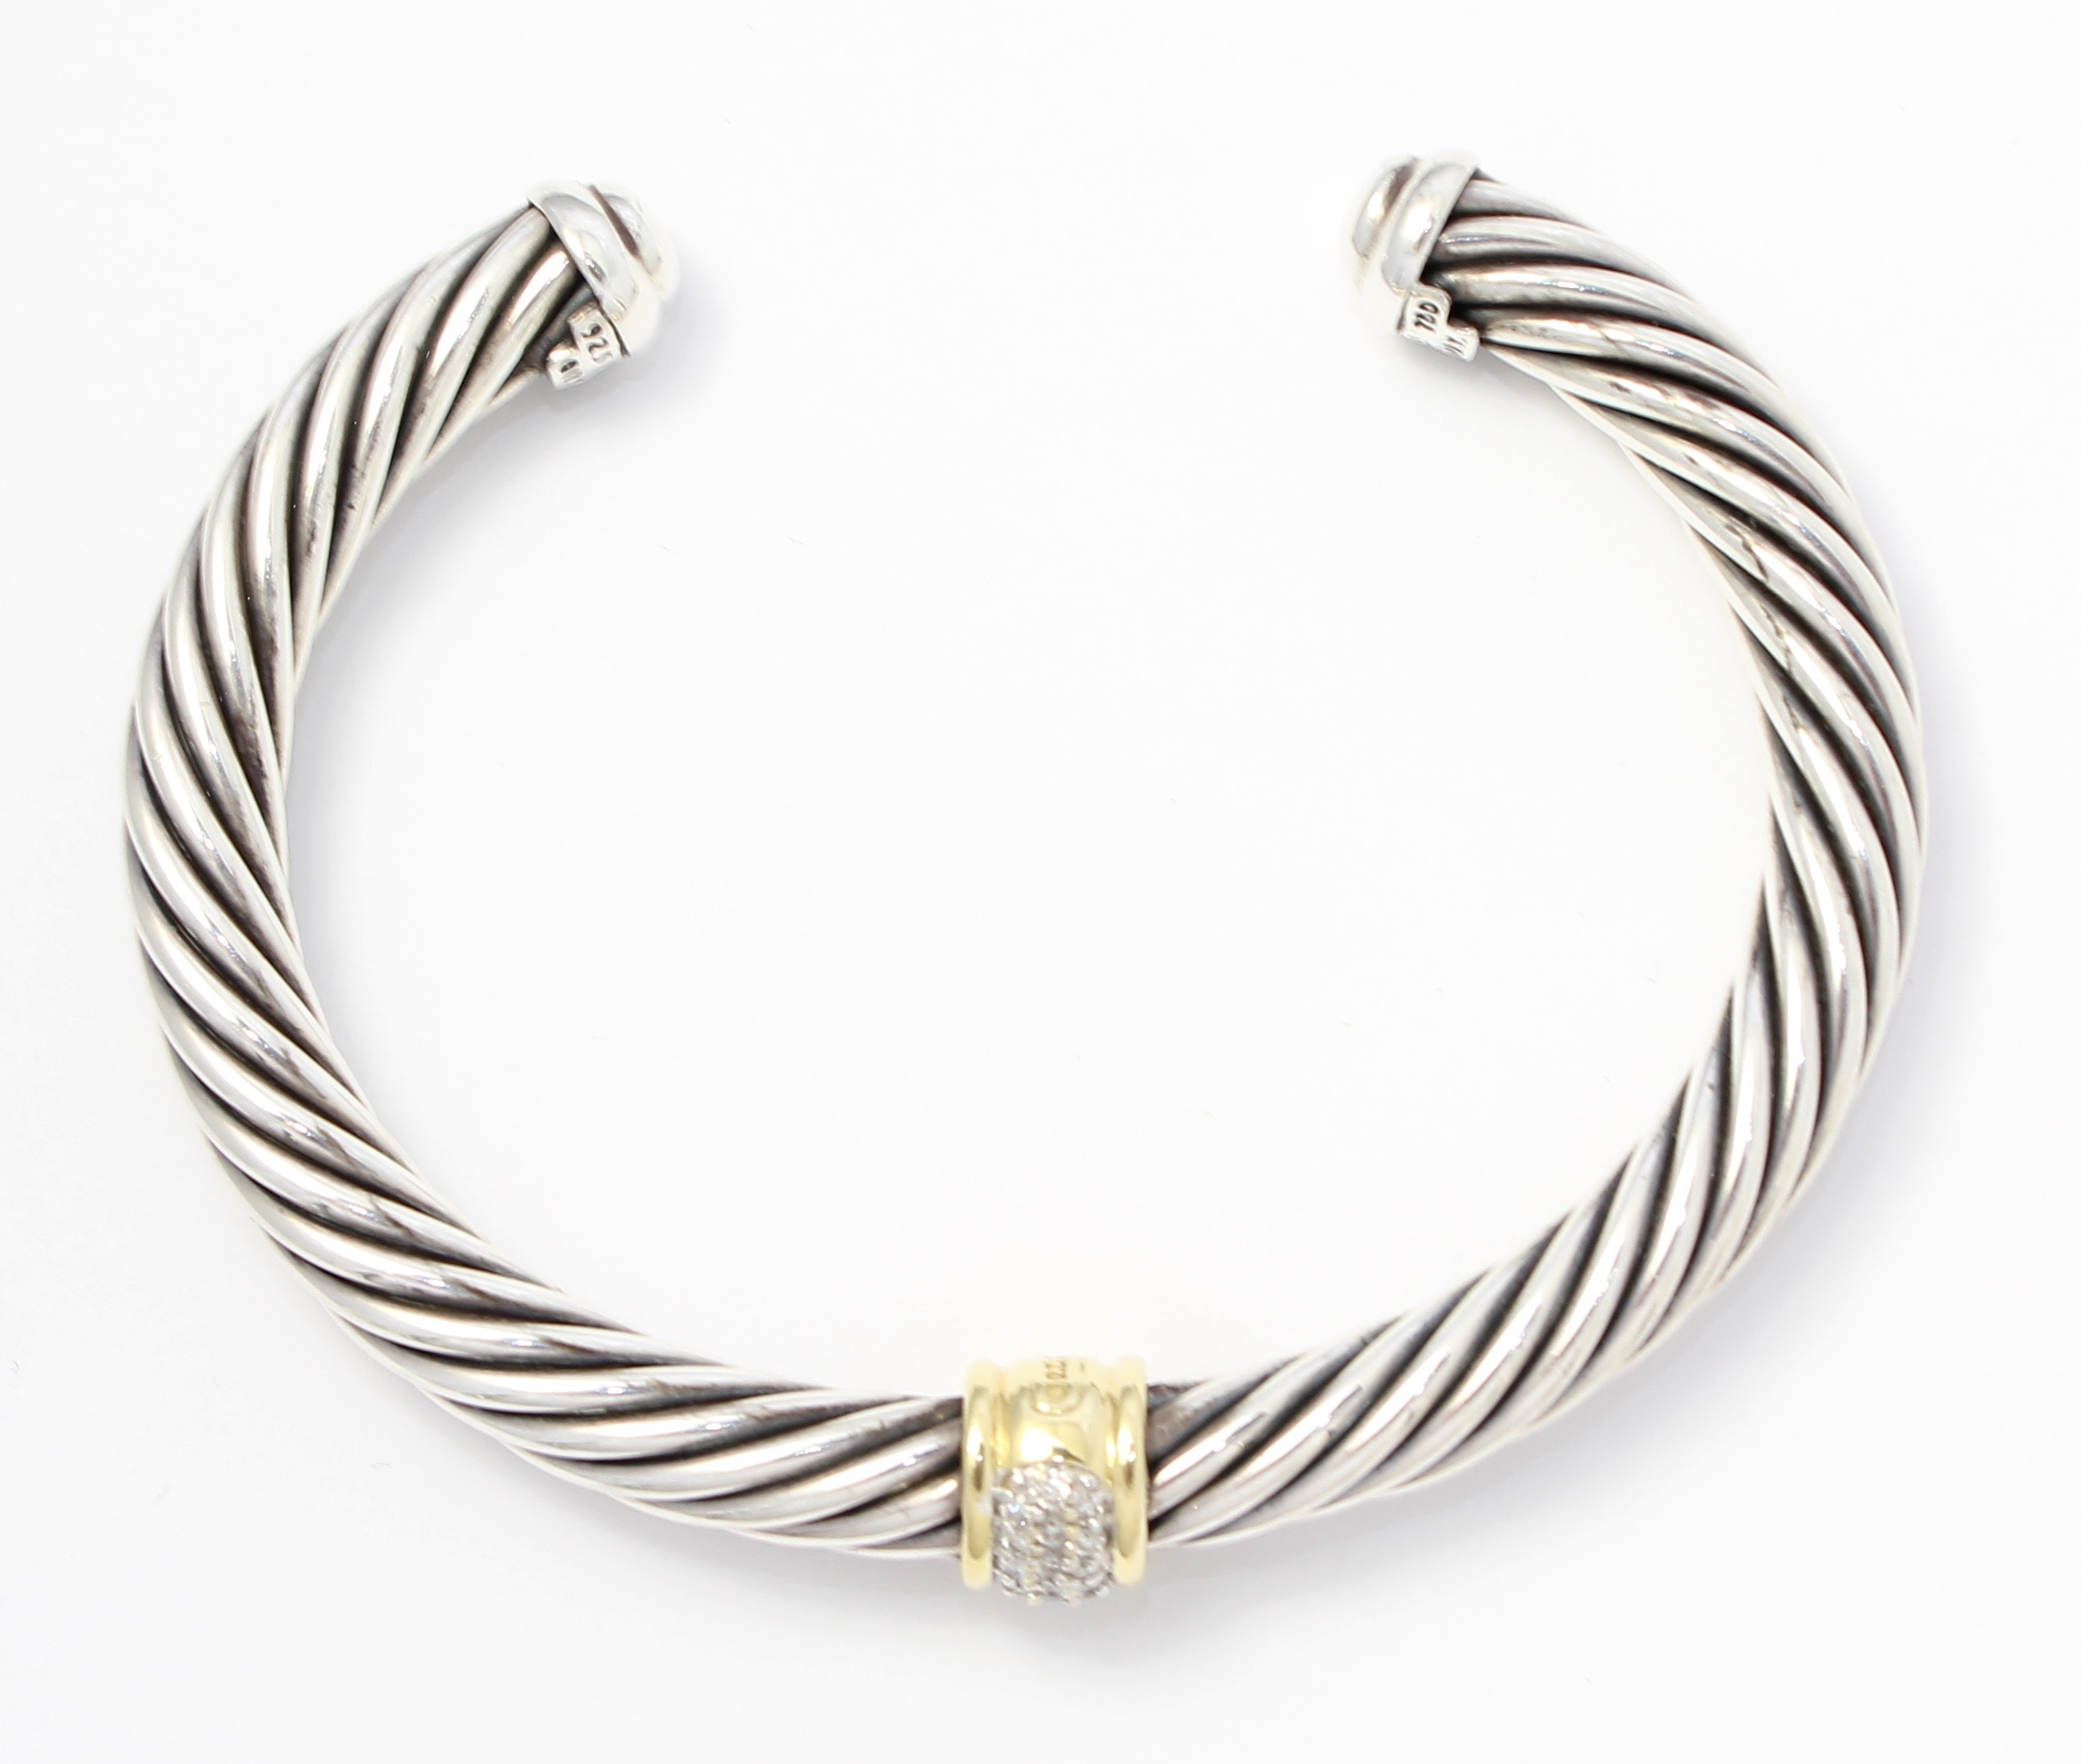 david yurman 18k gold silver 7mm cable classics cuff